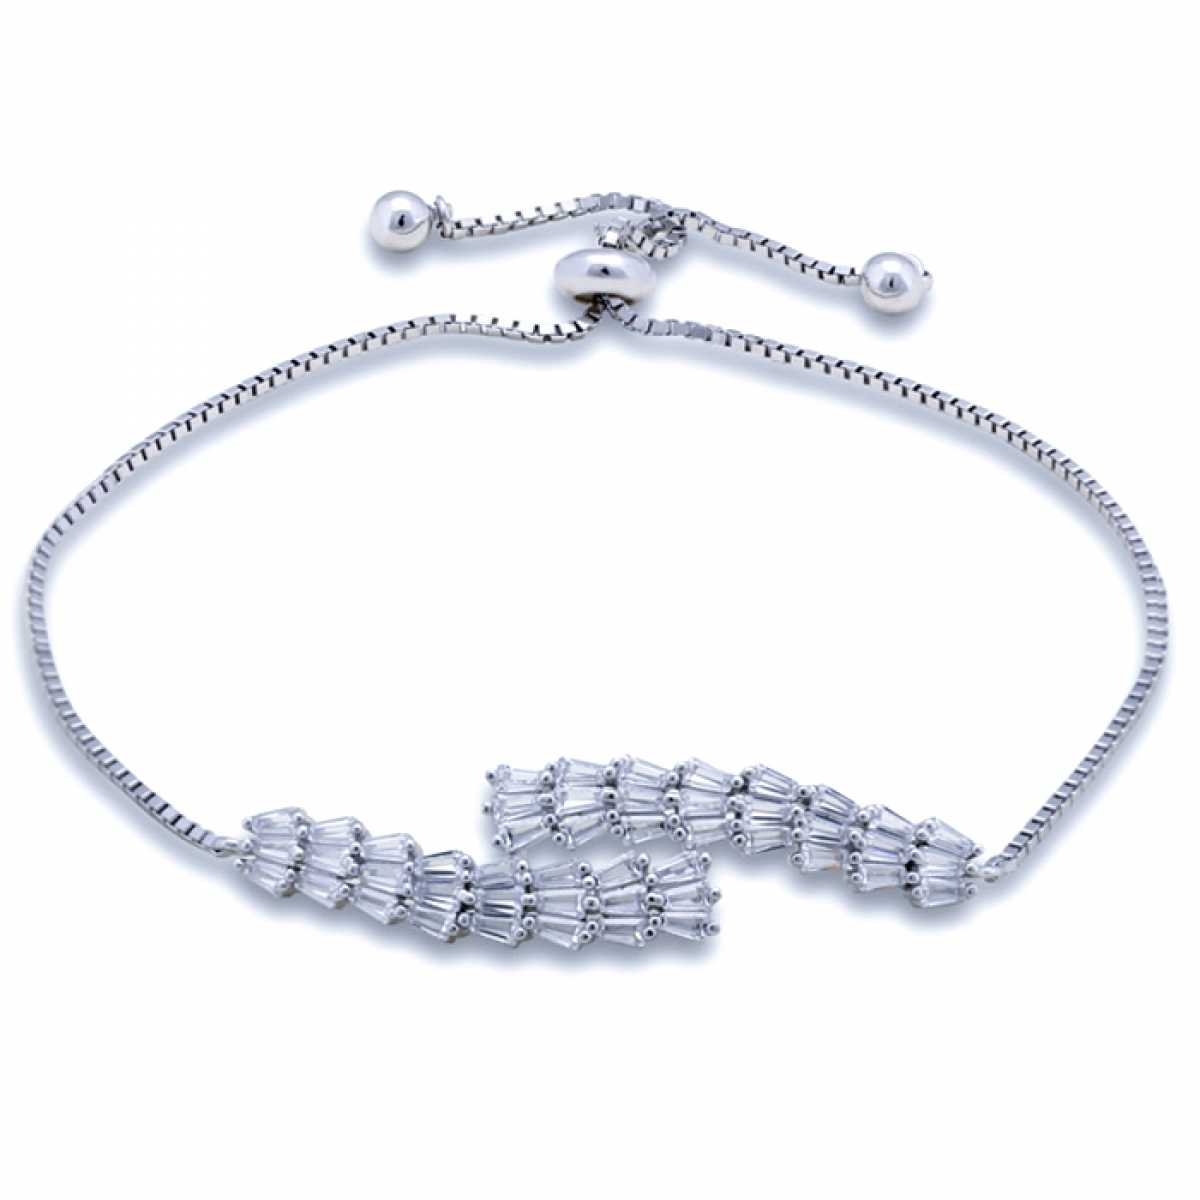 D For Diamond Silver Chain Bracelet